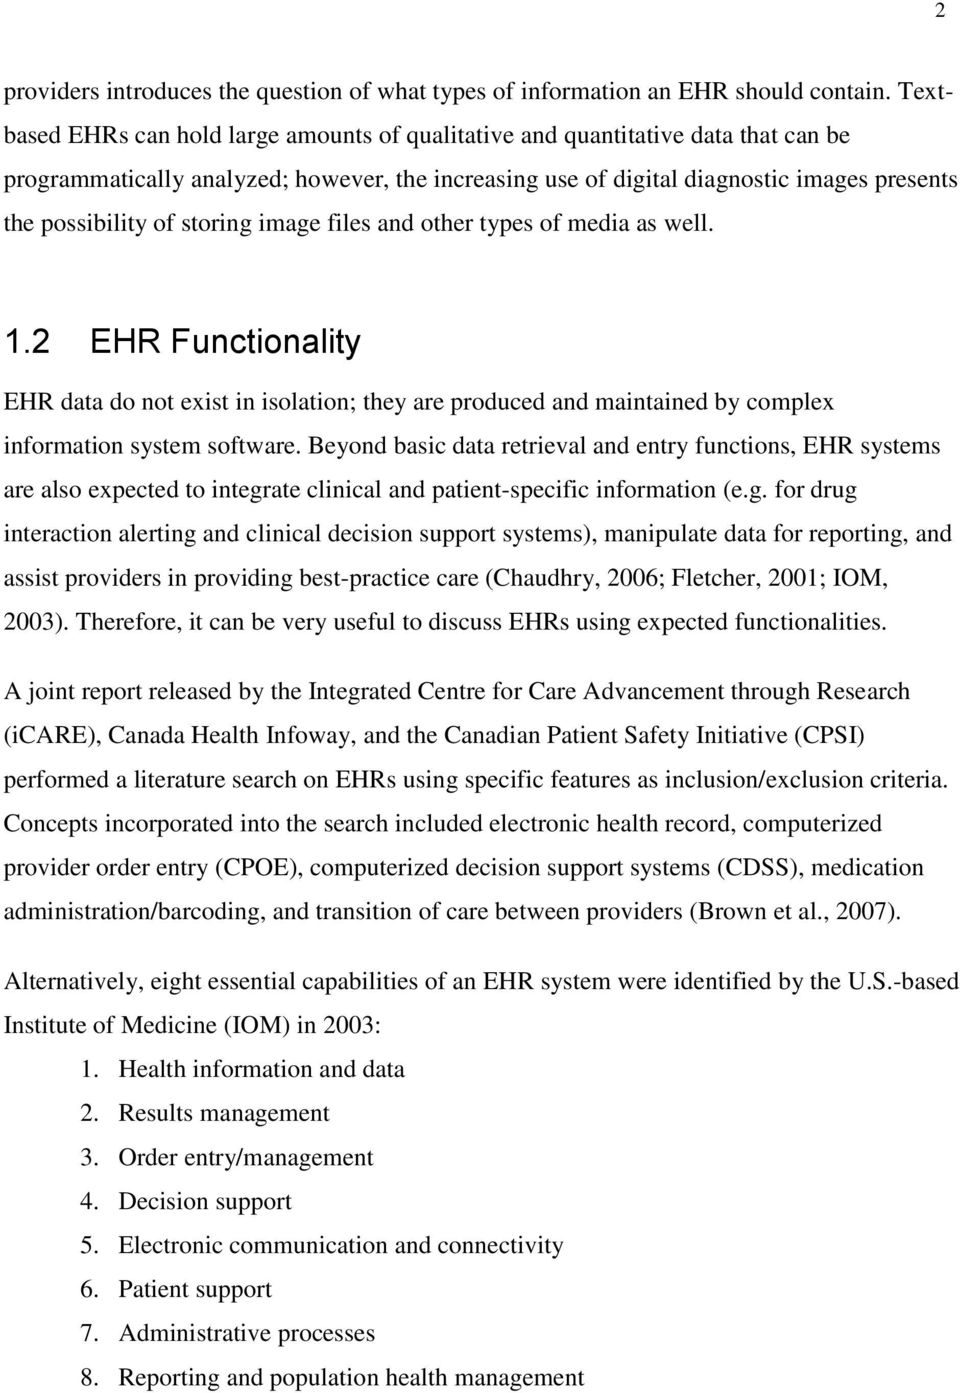 storing image files and other types of media as well. 1.2 EHR Functionality EHR data do not exist in isolation; they are produced and maintained by complex information system software.